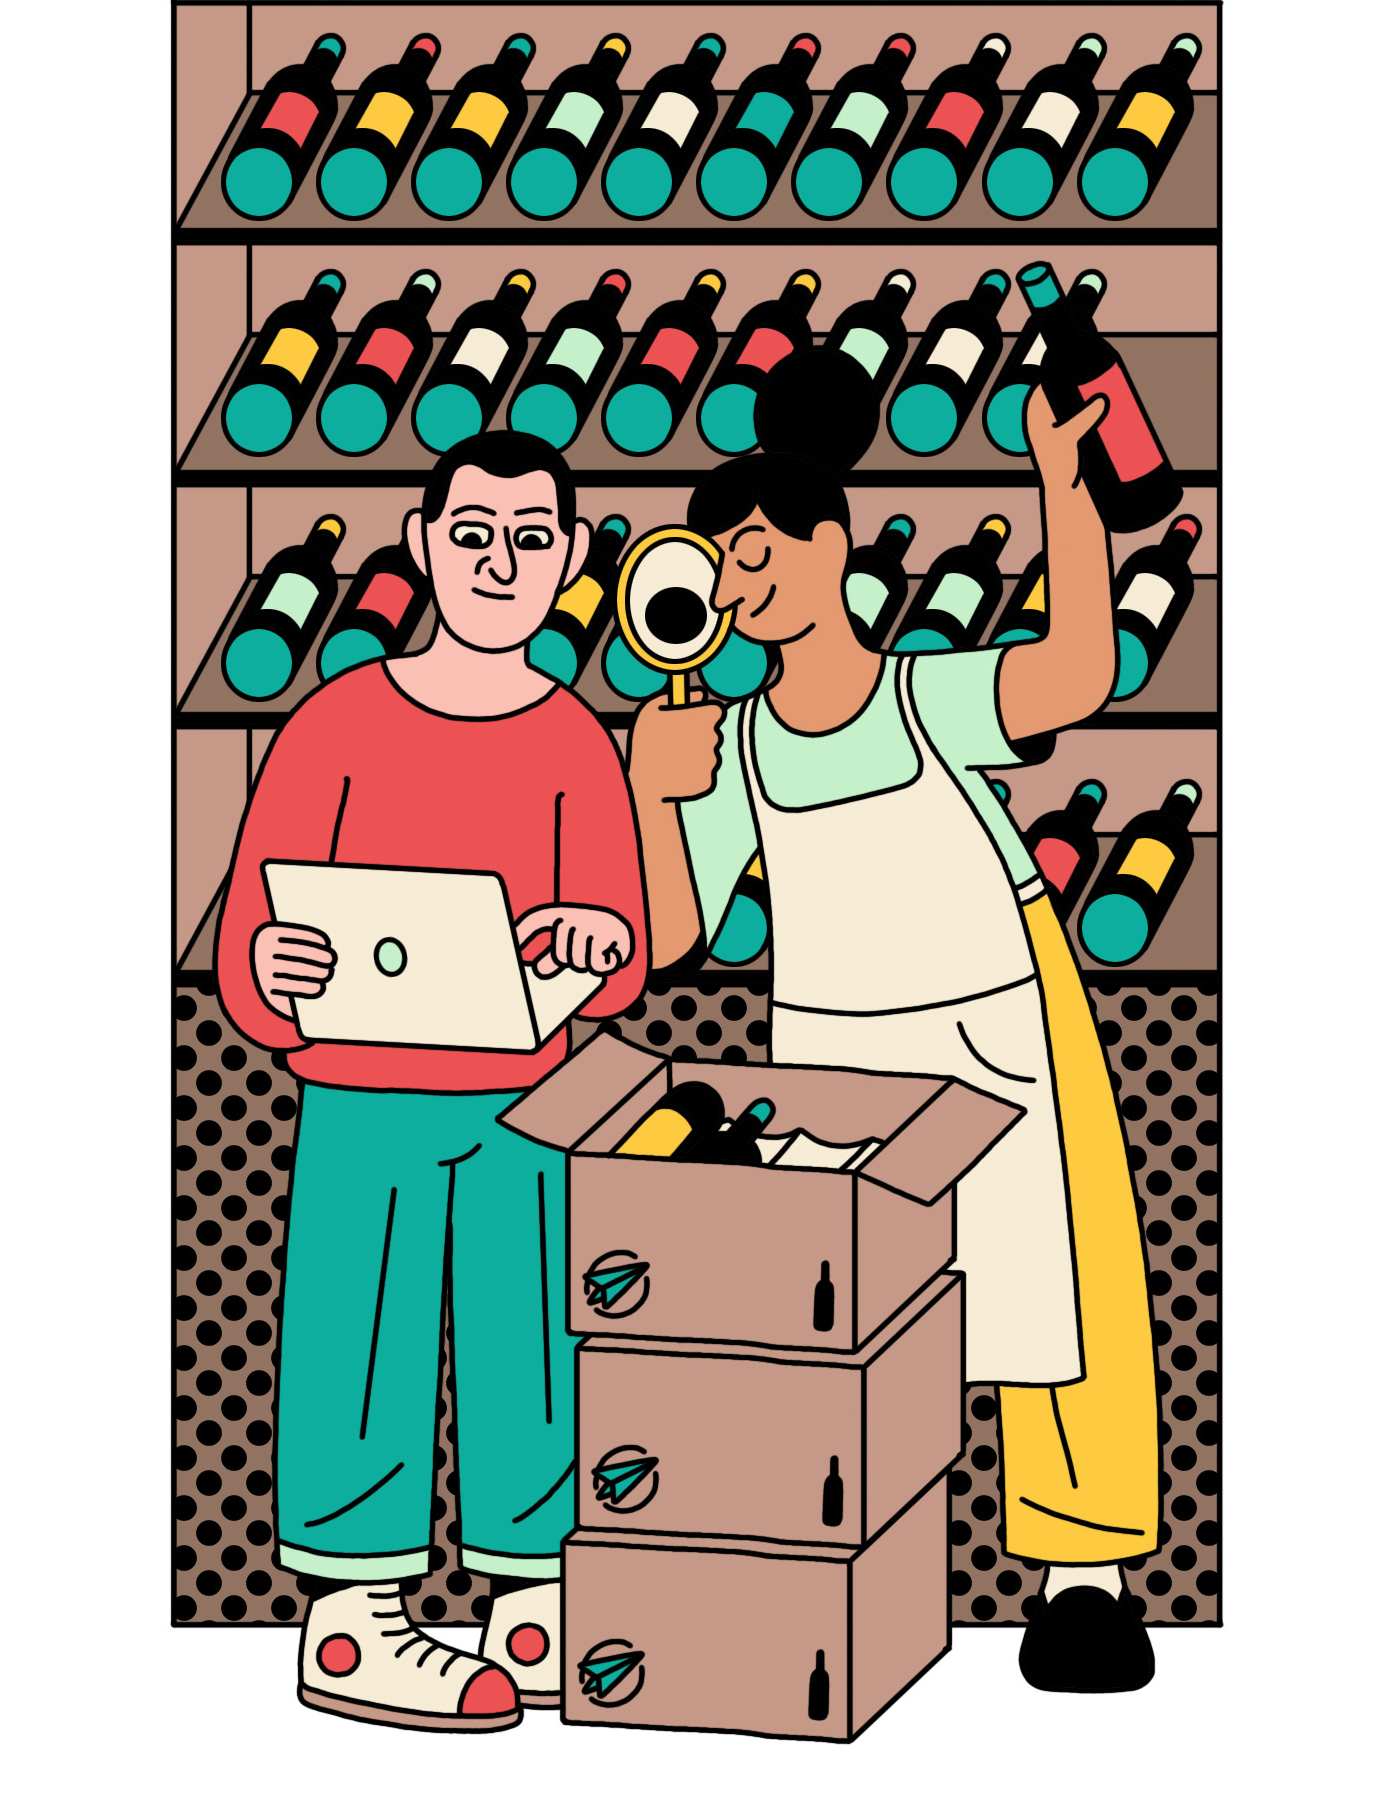 illustration of shopping at a wine store with a laptop in hand